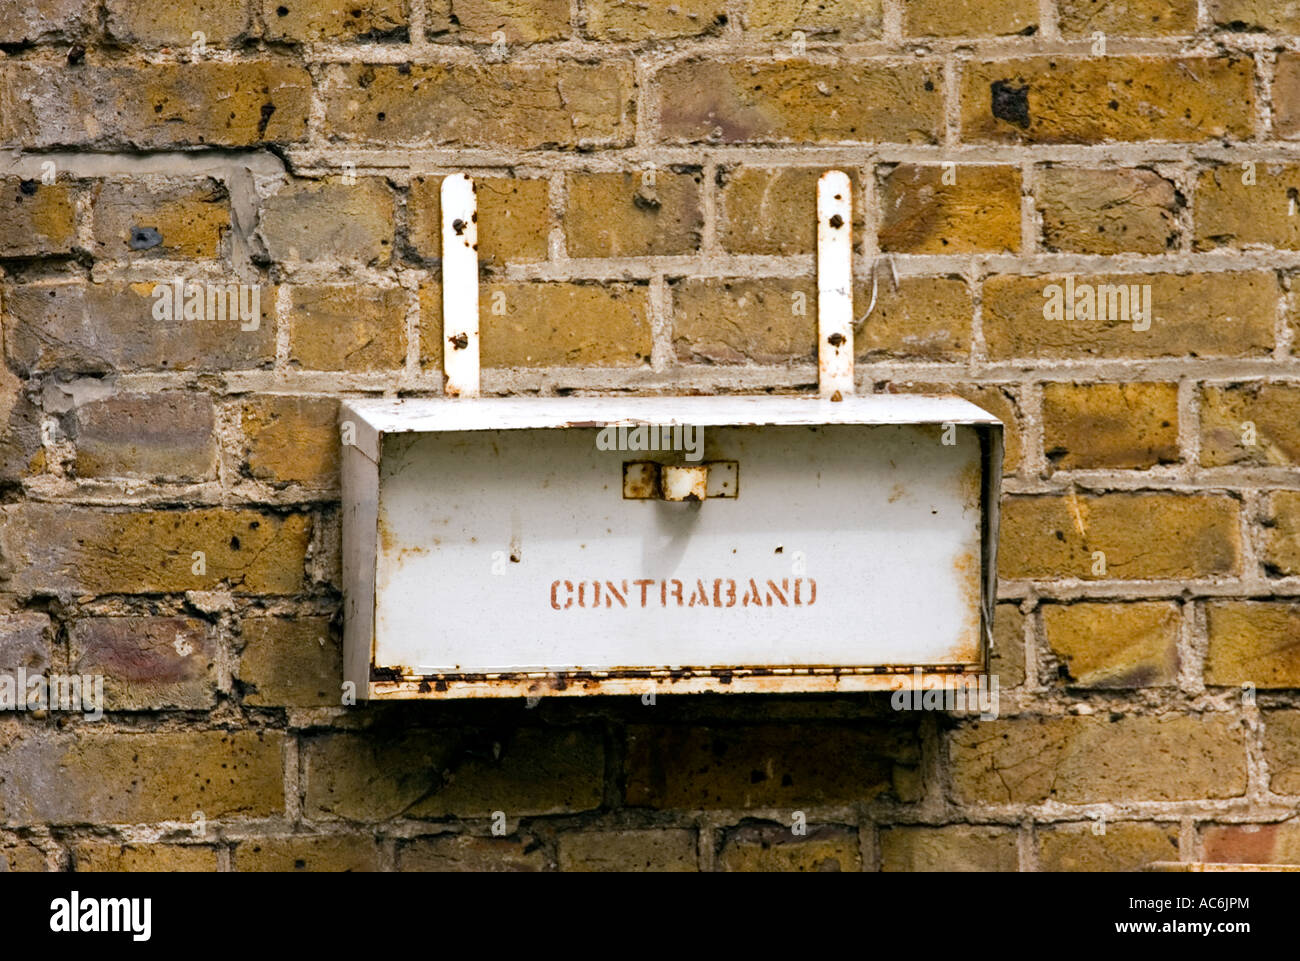 Close-up of contraband box mounted on brick wall,Essex, England,UK - Stock Image